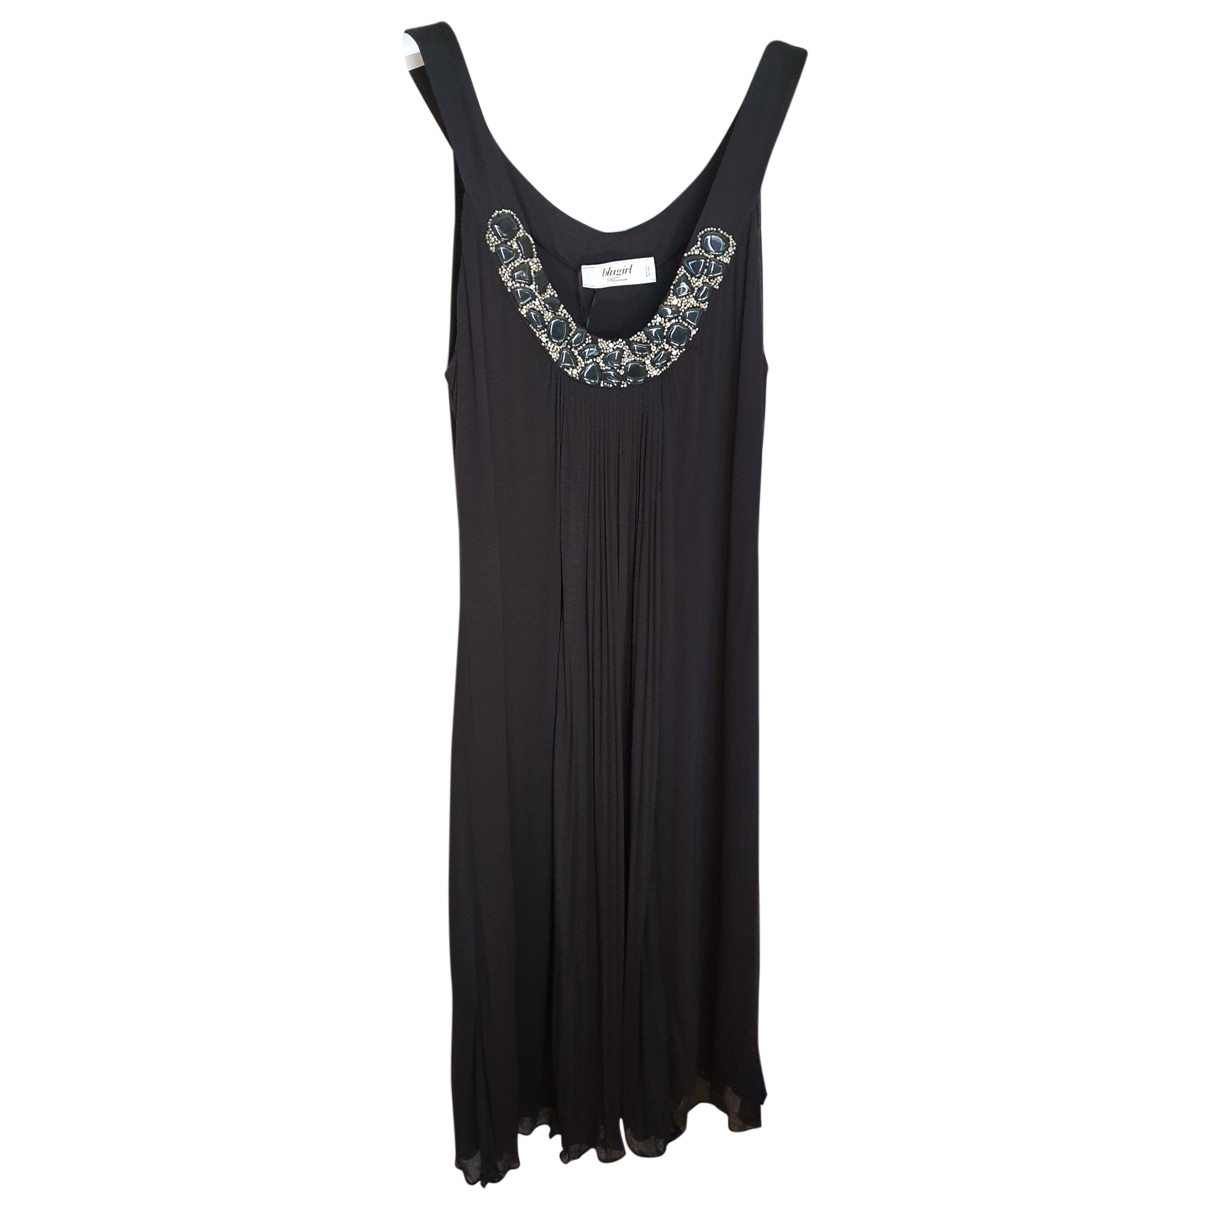 Blumarine \N Black Cotton - elasthane dress for Women 46 FR